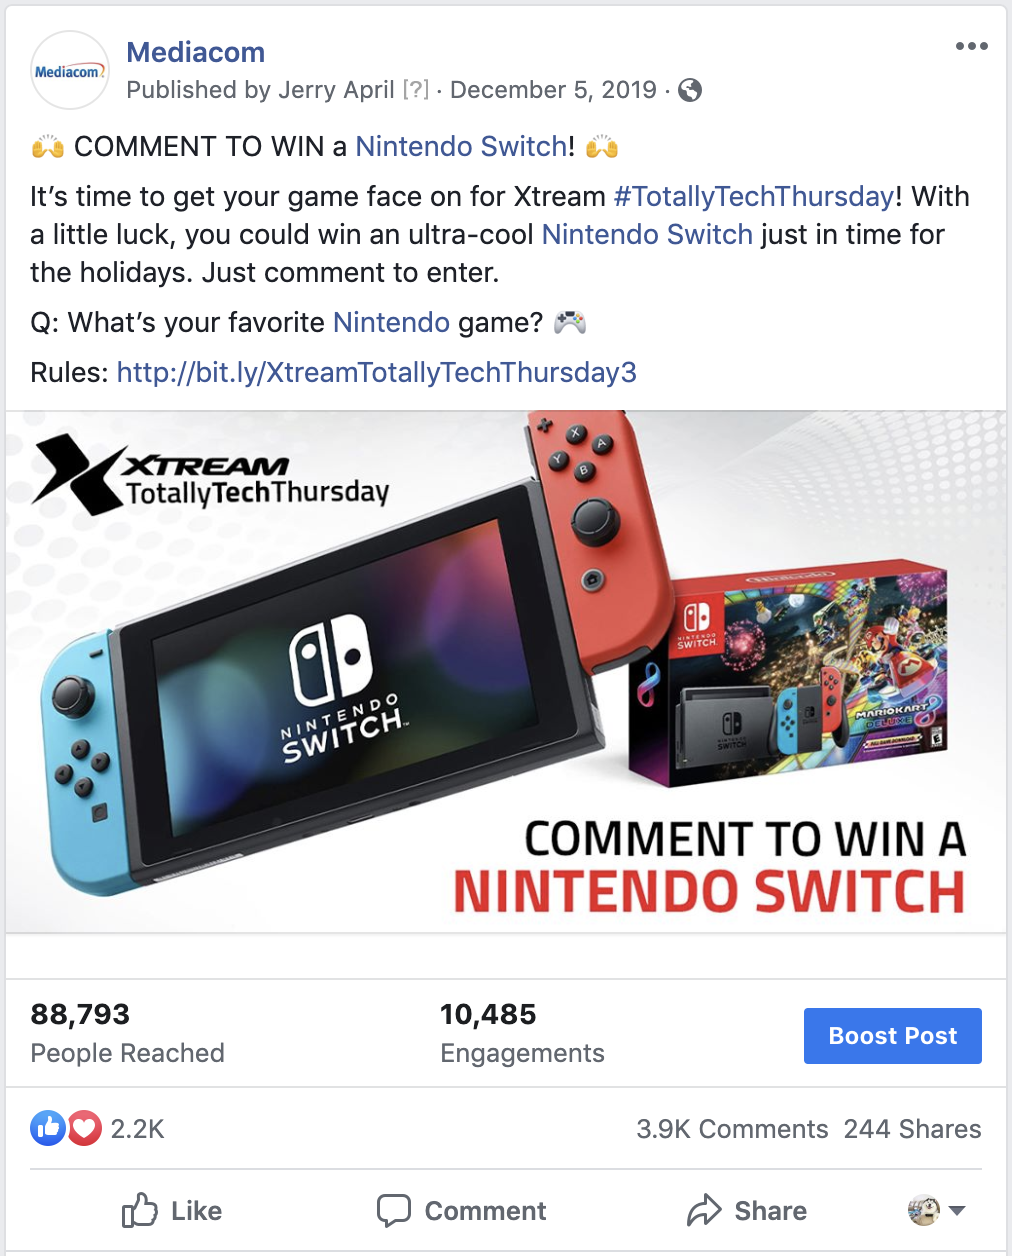 FB_Paid_Post_Tech_Sweeps_3_Switch_12.5.20